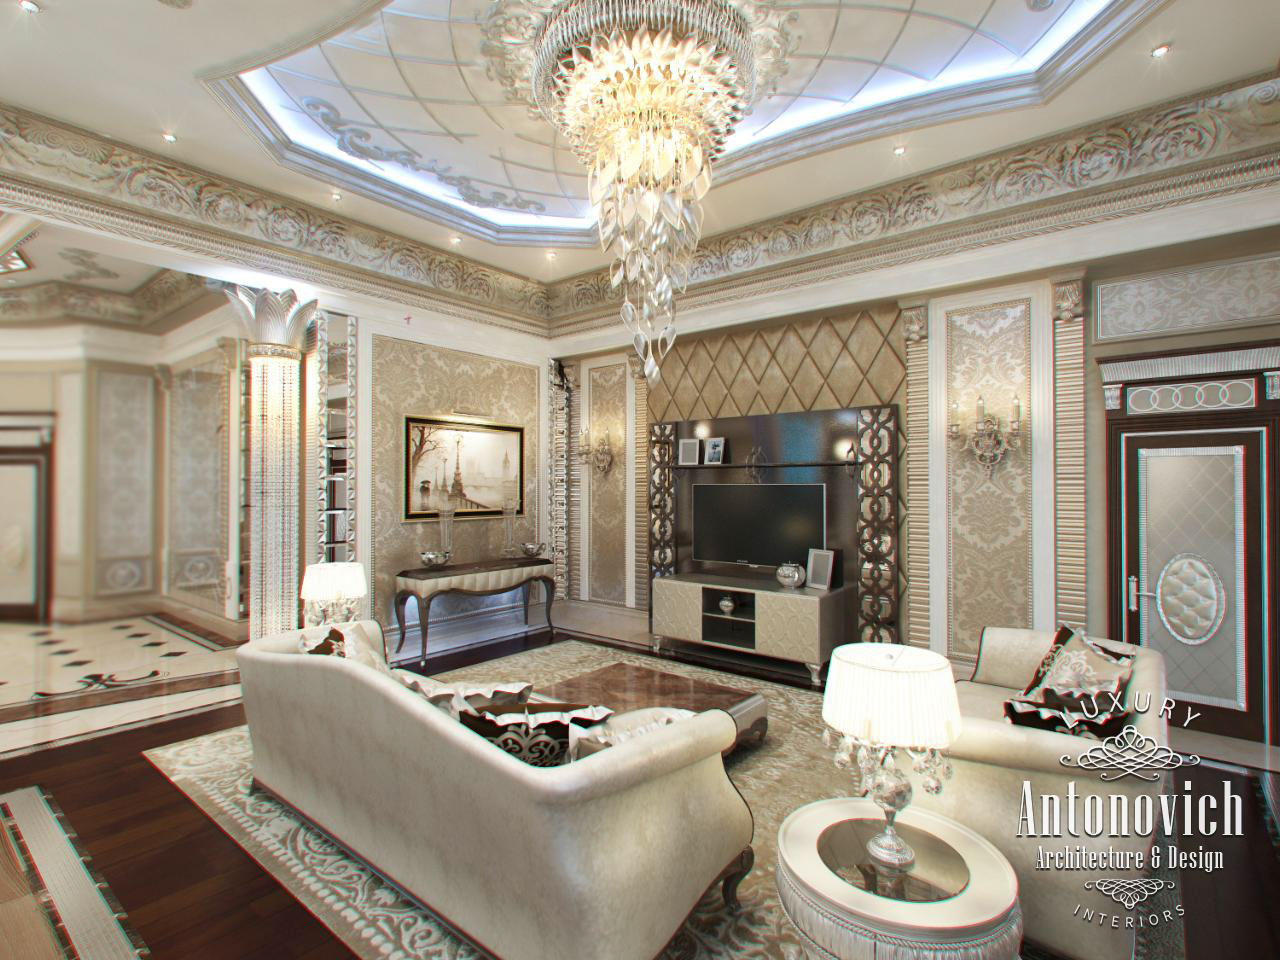 Interior Design Company In Dubai Antonovich On Behance